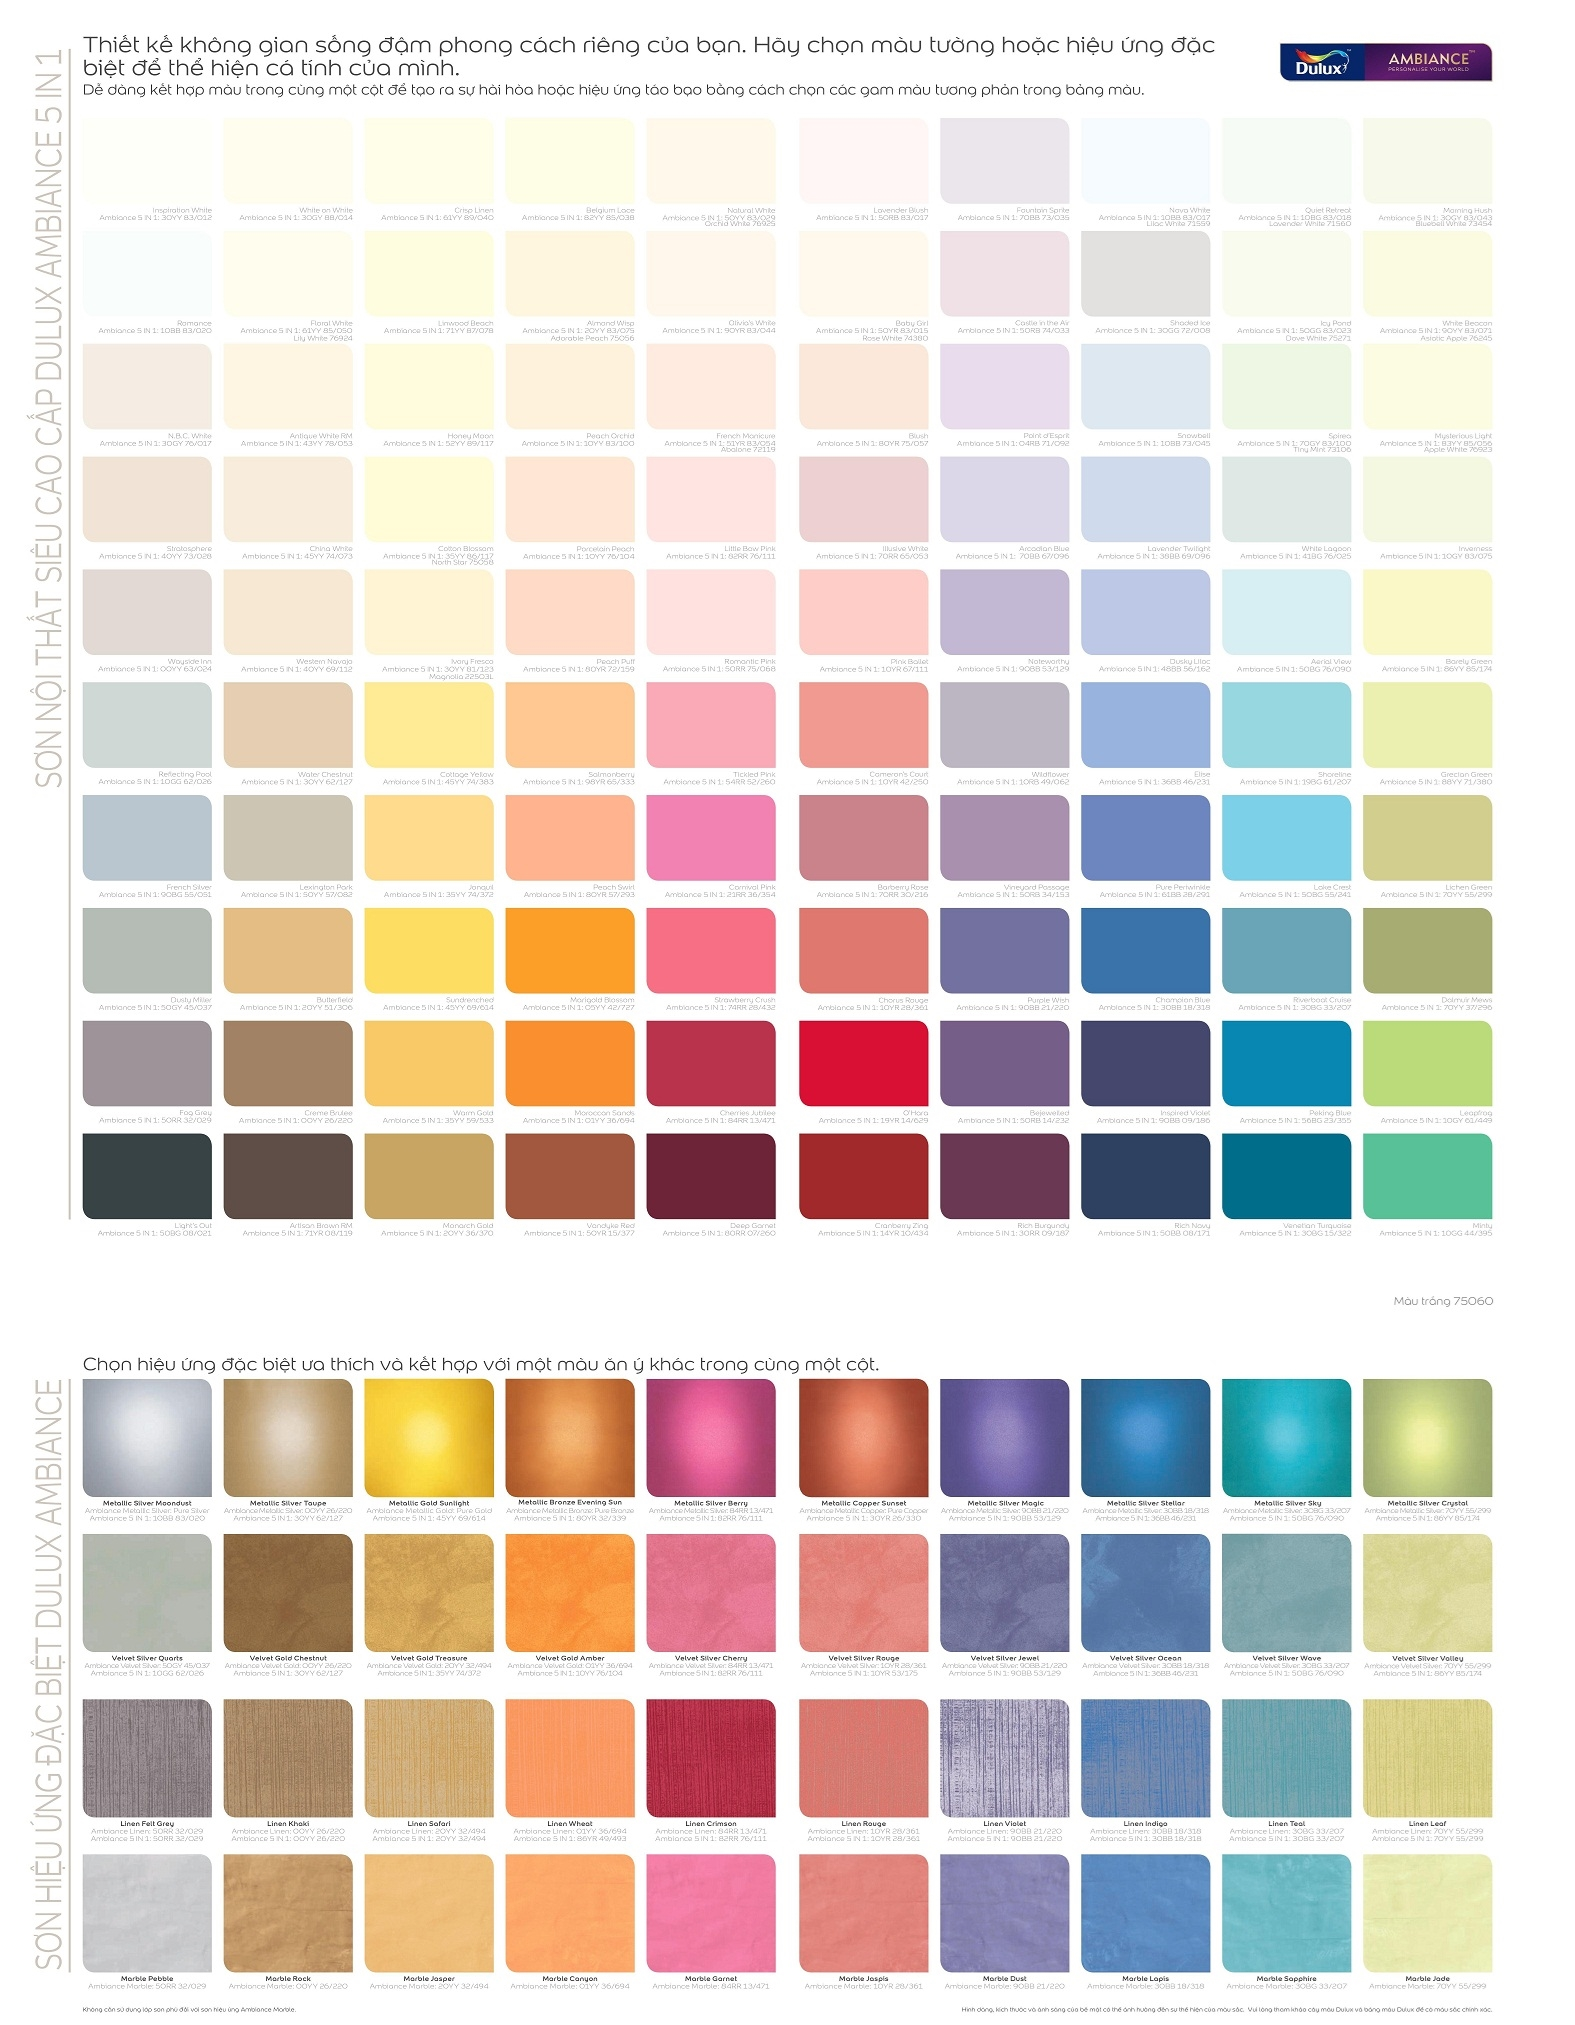 son-mai-anh-bang-mau-son-nuoc-dulux-trong-nha-dulux-ambiance-5in1-5